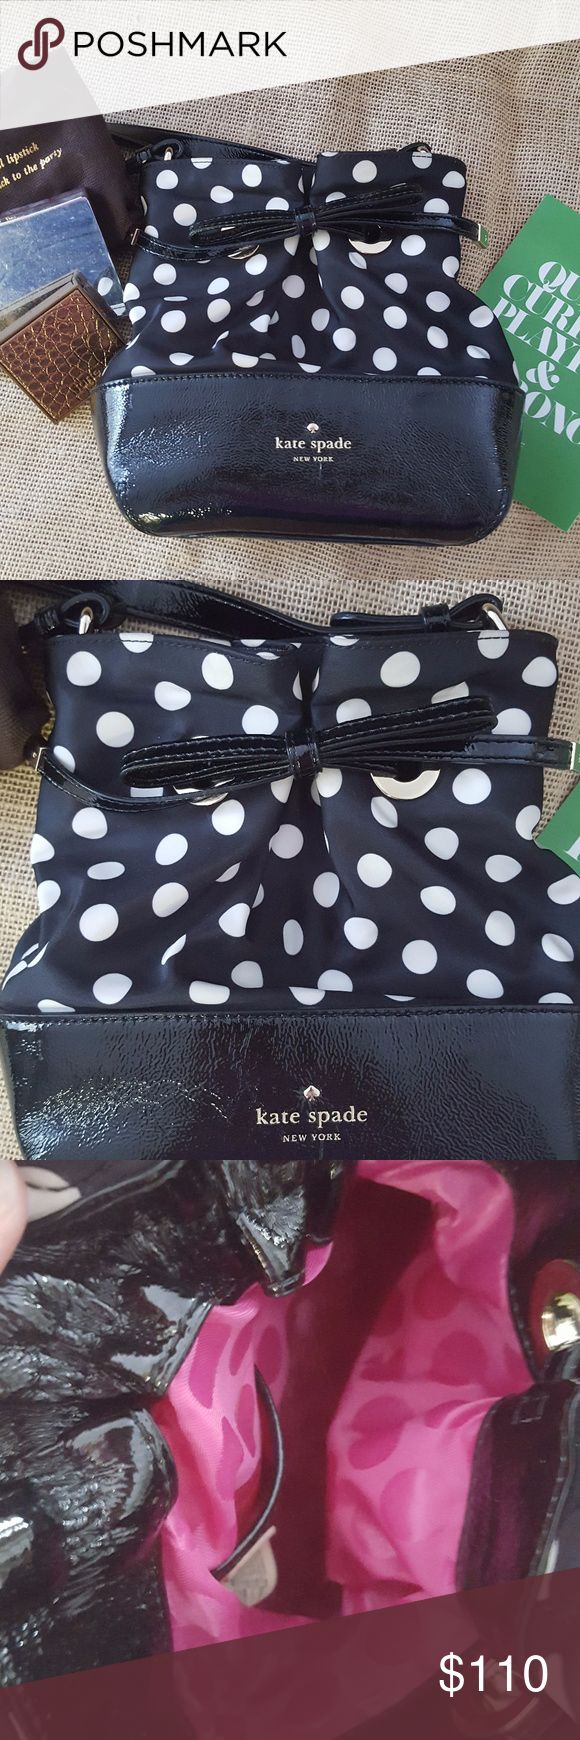 Kate Spade Polka Dot Bag What is more fun than polka dots?? Kate Spade polka dots! This purse is beautiful! Fun evening bag style with bright magenta lining. Comes with the dust bag!  8 in by 7 in by 3.5 d. Long shoulder strap. Woven nylon with patent leather trim, 14 k hardware.  100% Authentic. kate spade Bags